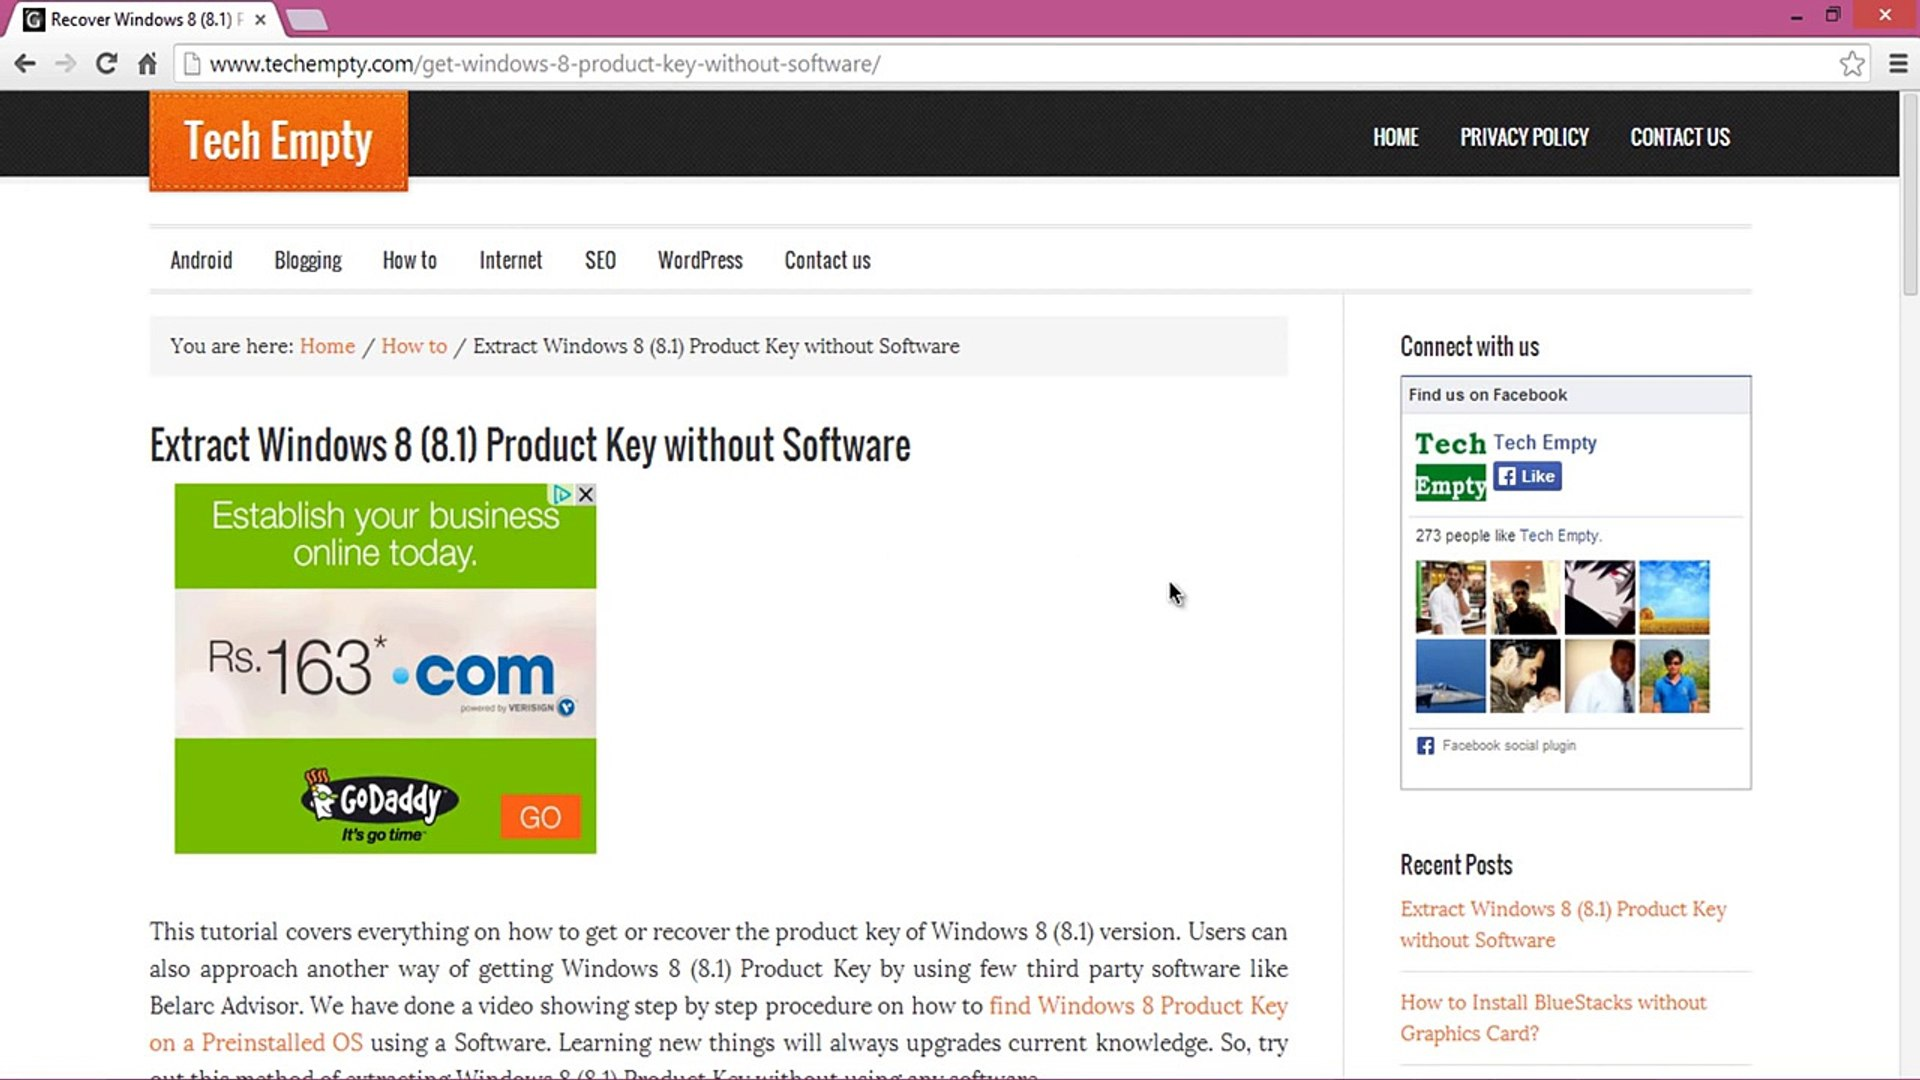 can i buy windows 8 product key online